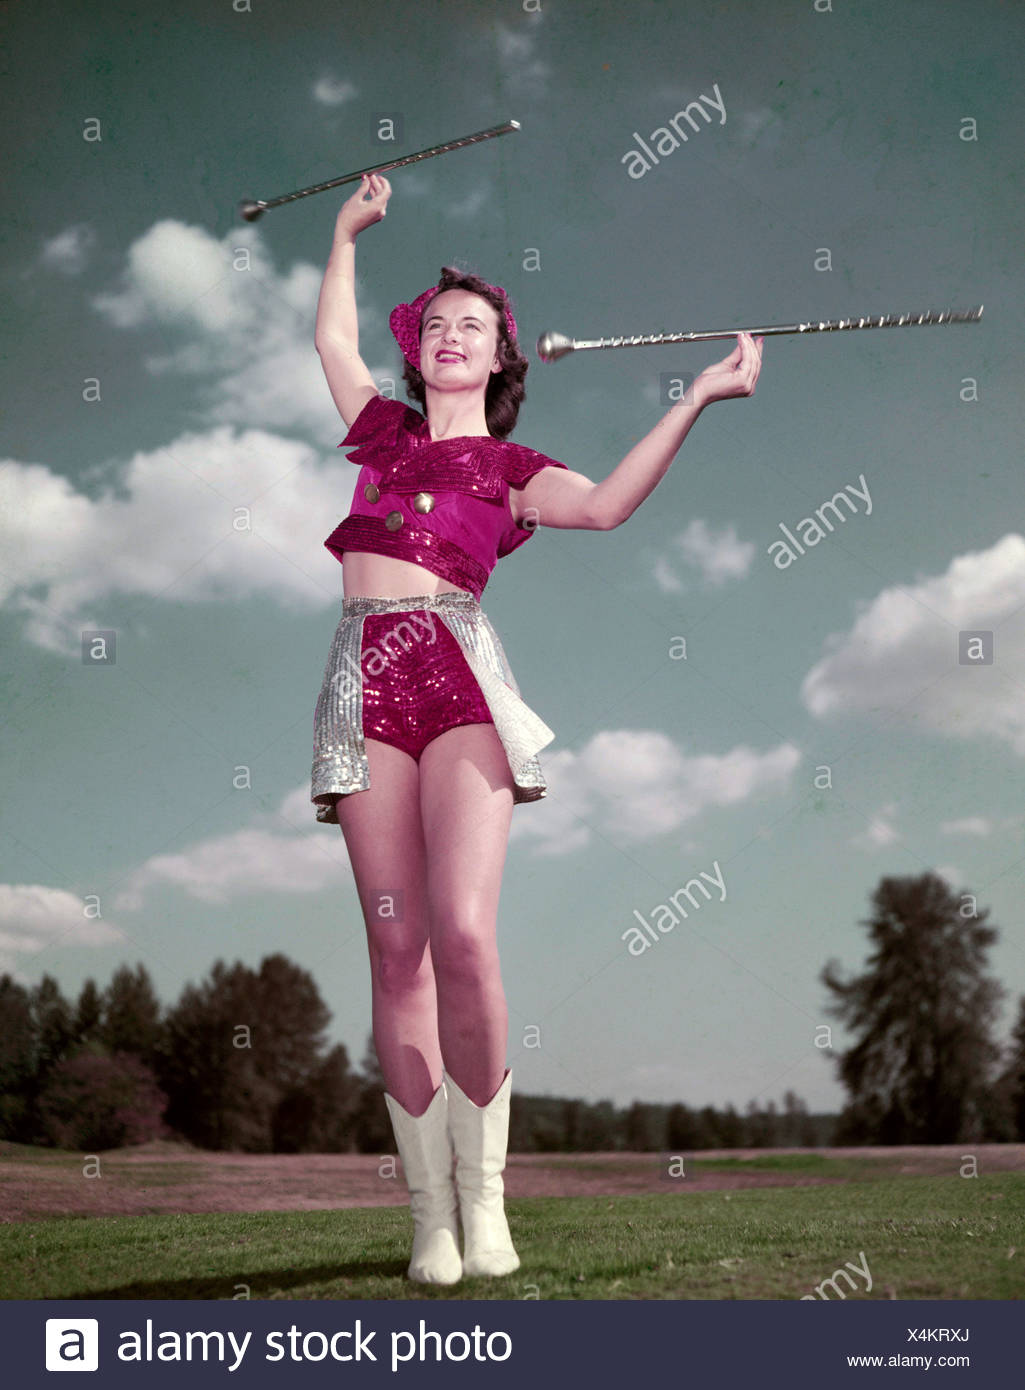 Low angle view of majorette twirling baton - Stock Image